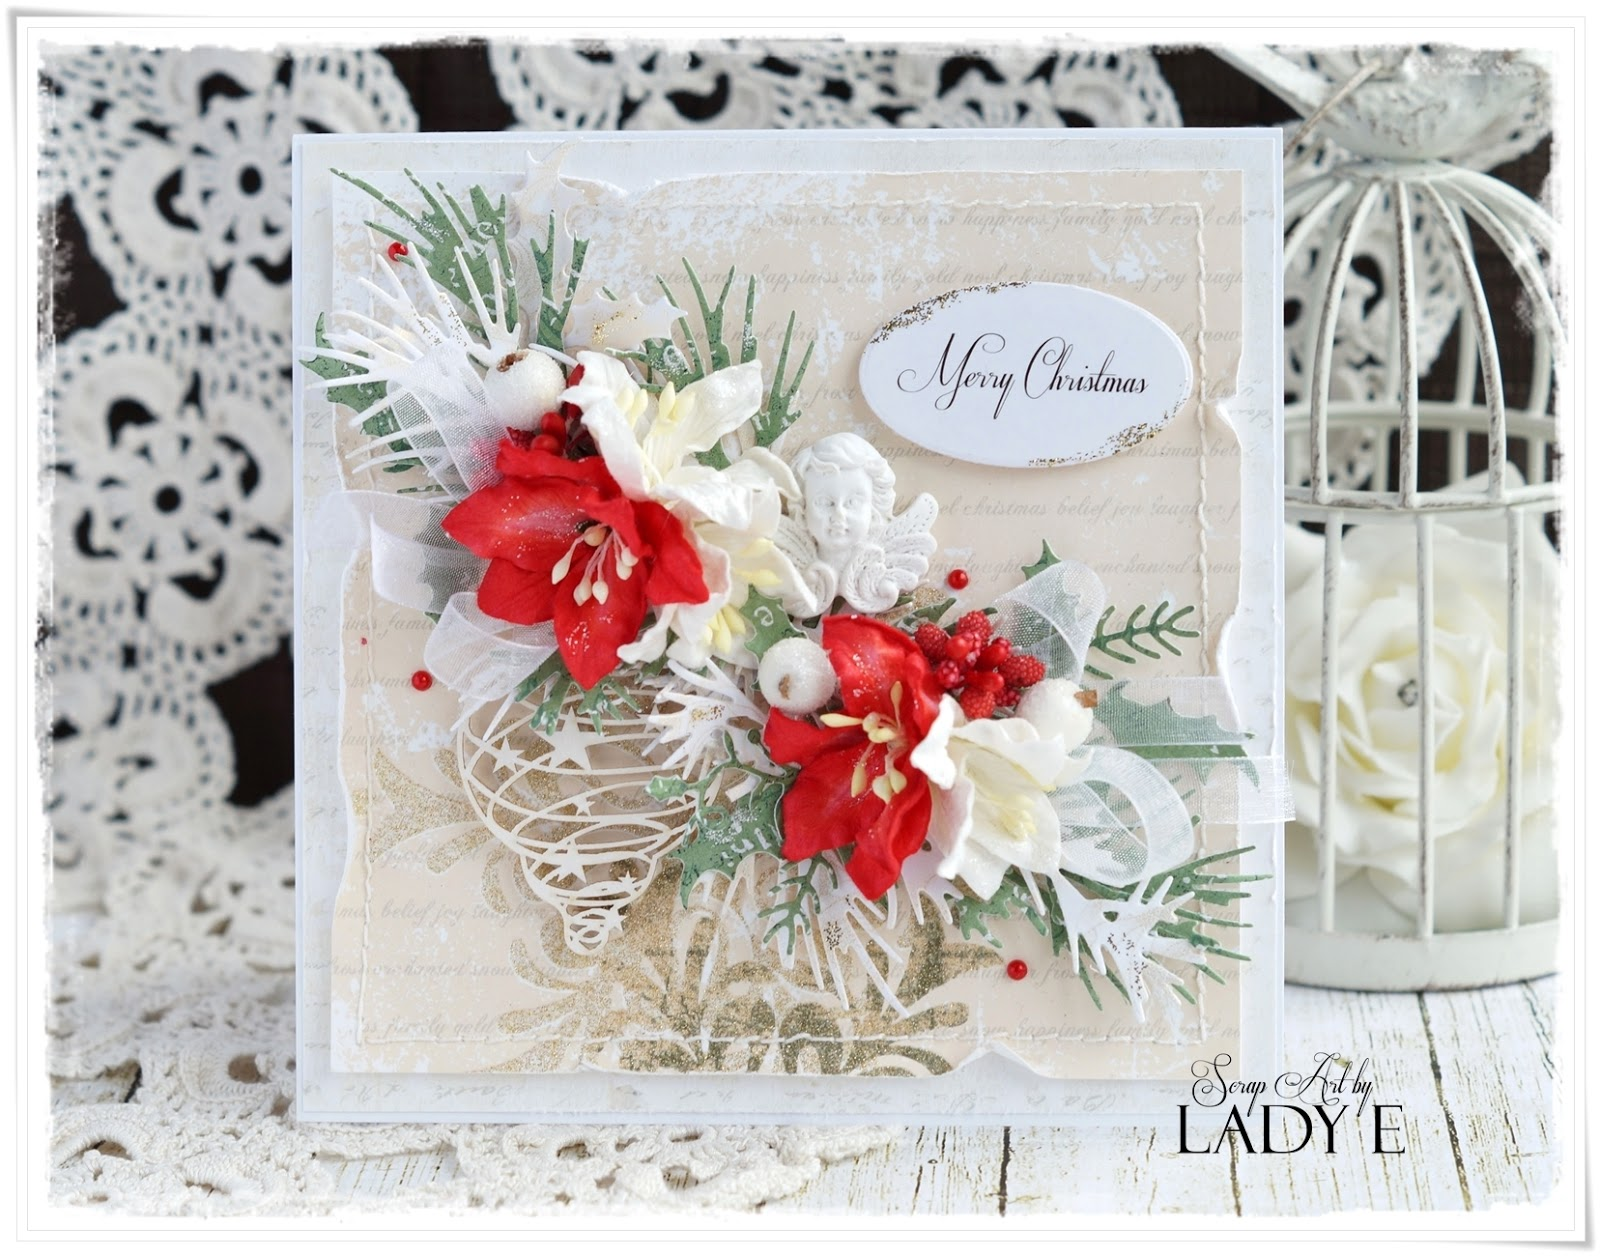 christmas cards  wild orchid crafts dt  scrap artlady e